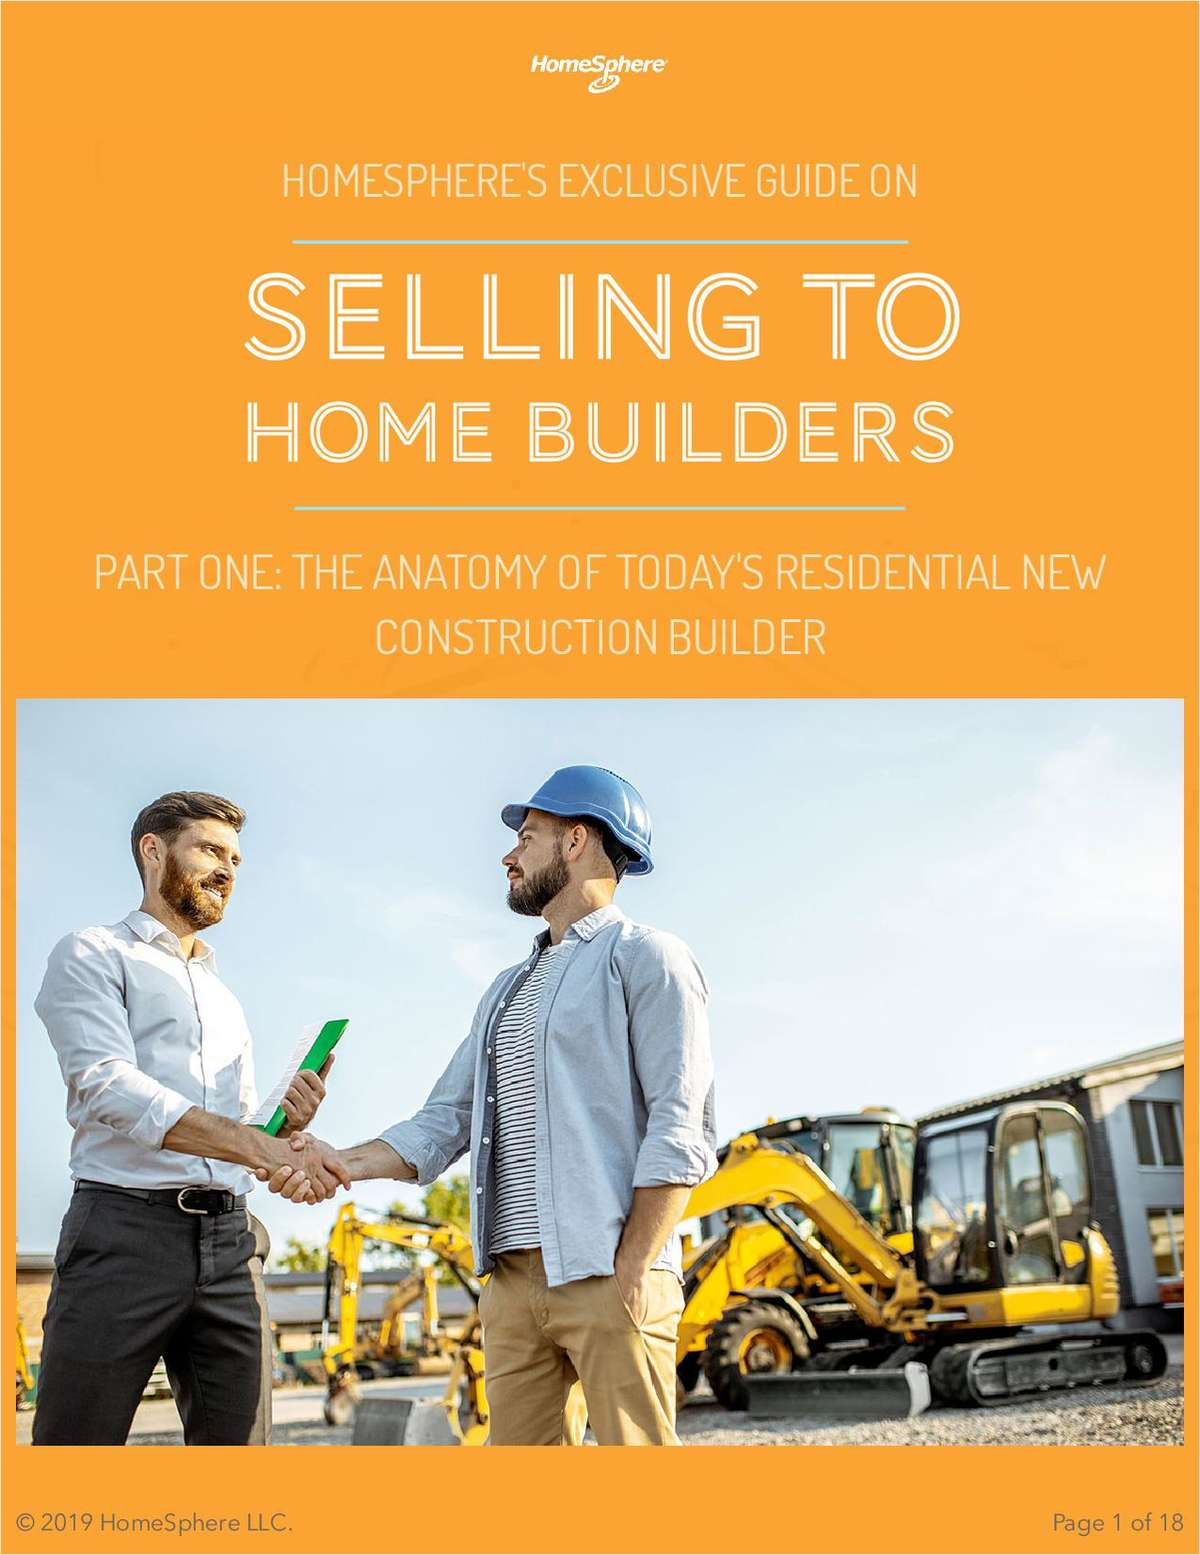 The Exclusive Guide on Selling to Home Builders